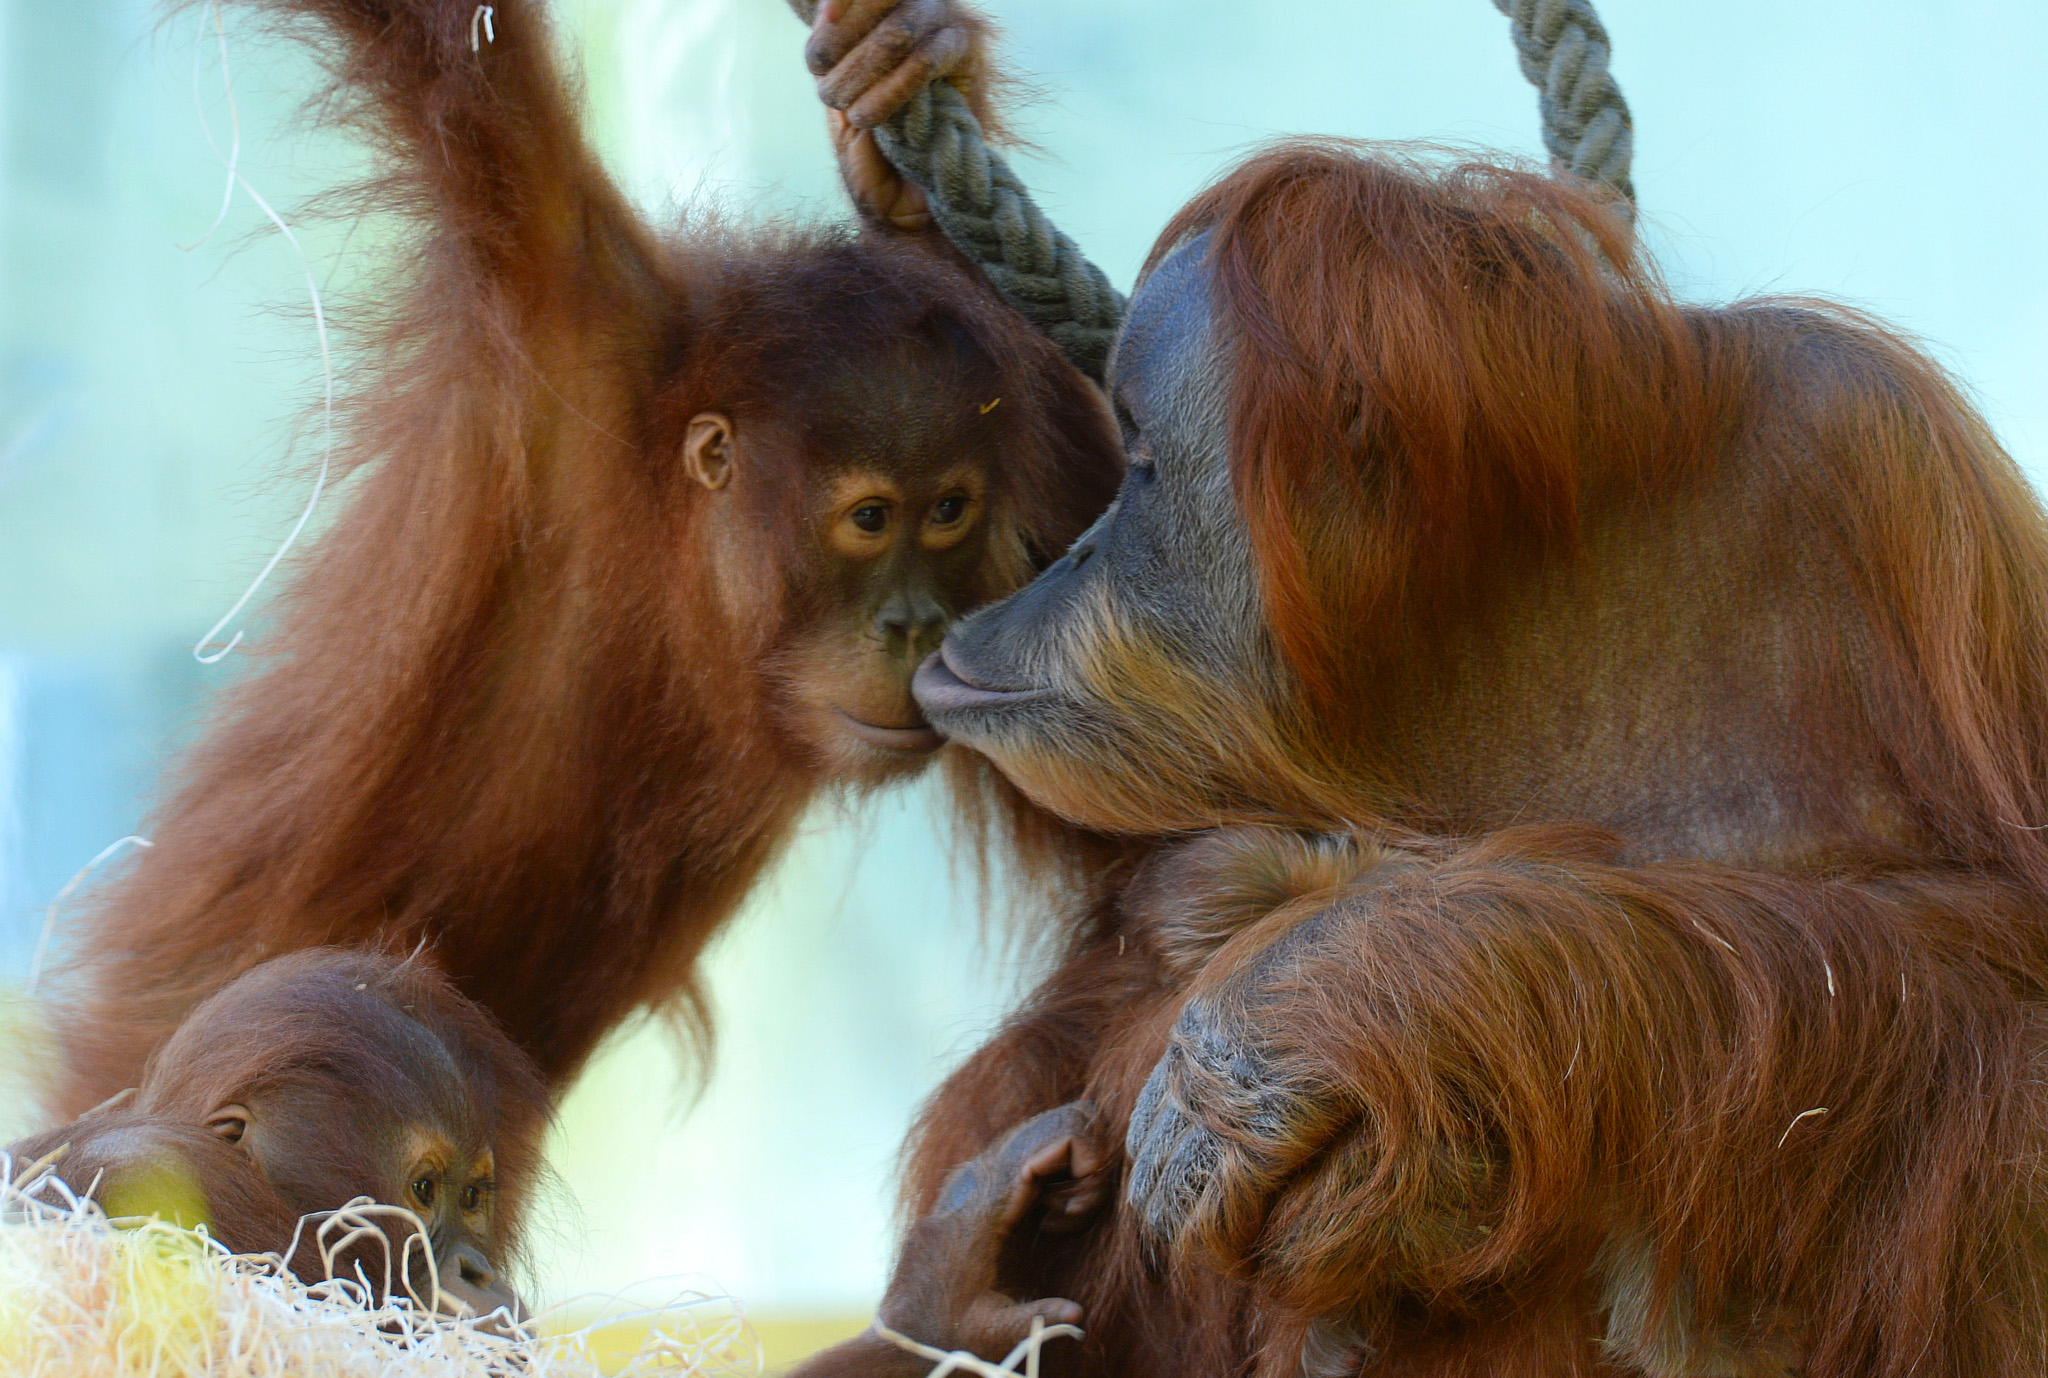 The Sumatra Orang-Utan Matra (R) holds h...The Sumatra Orang-Utan Matra (R) holds her one week old baby and smooches with her other daughter Jolie in the enclosure at the zoo Hellabrunn in Munich, southern Germany on February 7, 2014. The little Orang-Utan baby was born in the zoo on January 31, 2014 and hasn't been named yet.